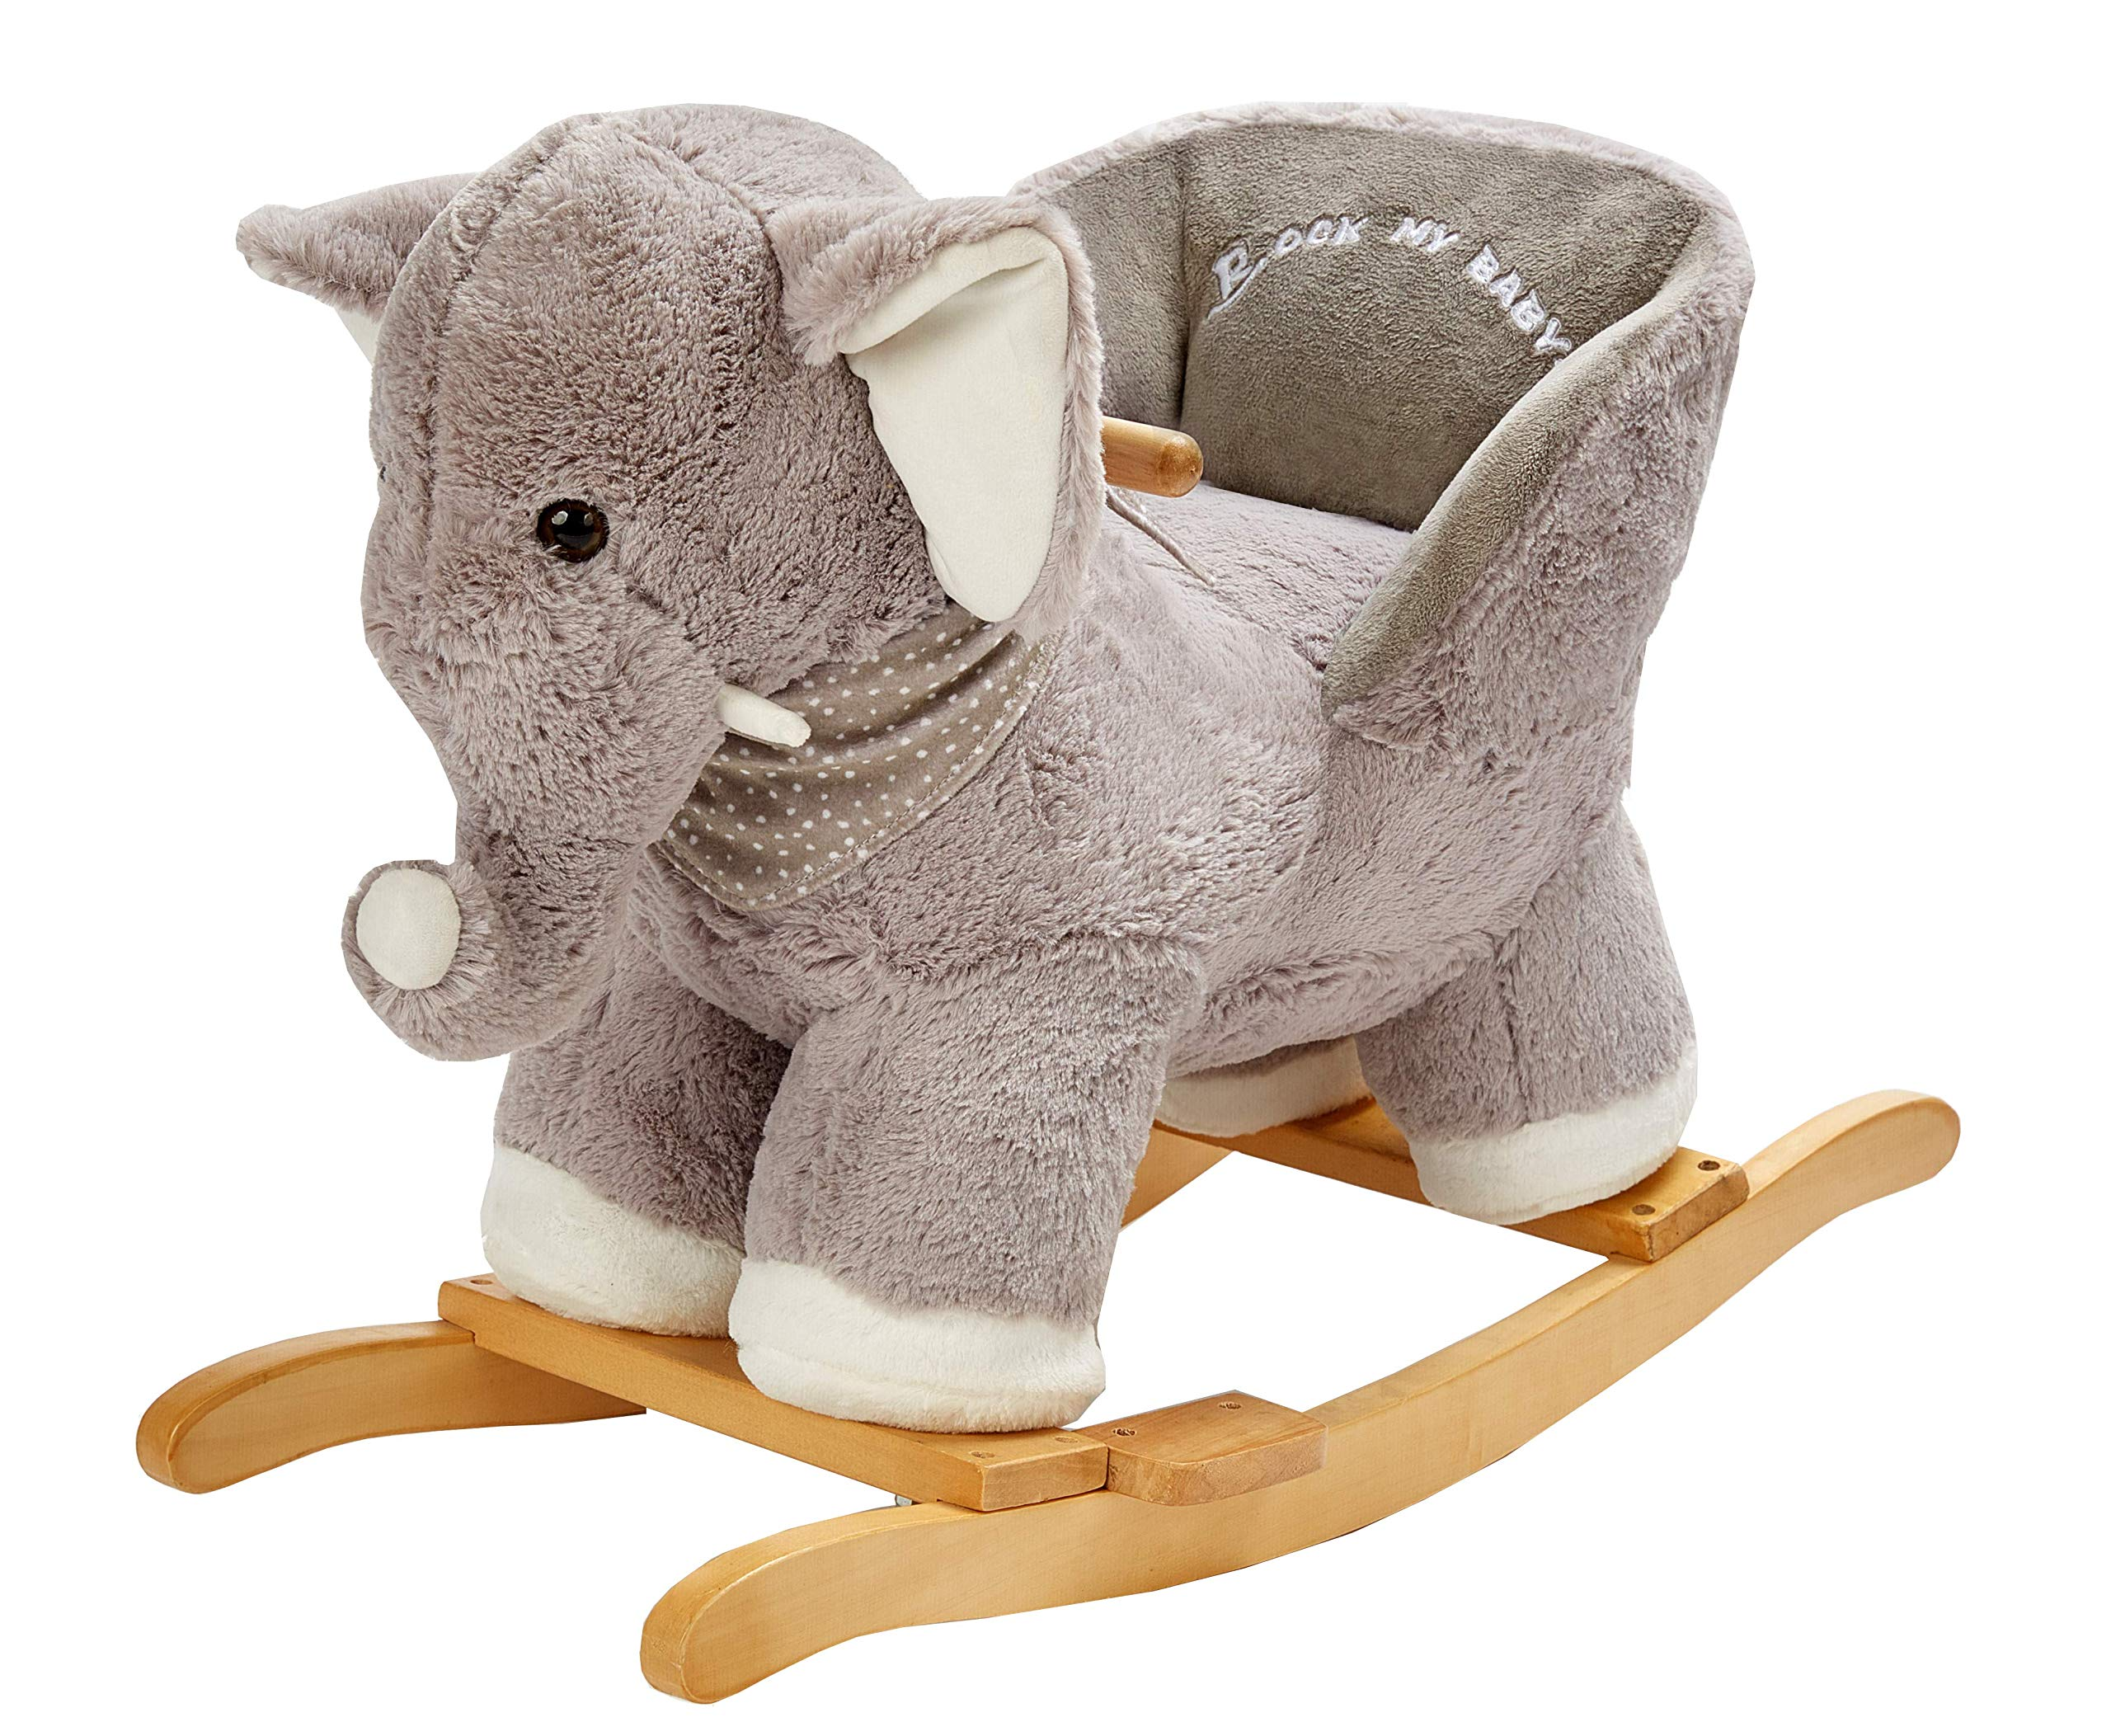 ROCK MY BABY Gray Elephant with Chair,Plush Stuffed Rocking Animals,Wooden Rocking Toy Horse/Baby Rocker/Animal Ride on,Home Decor,for Girls and Boys,(Gray Elephant)